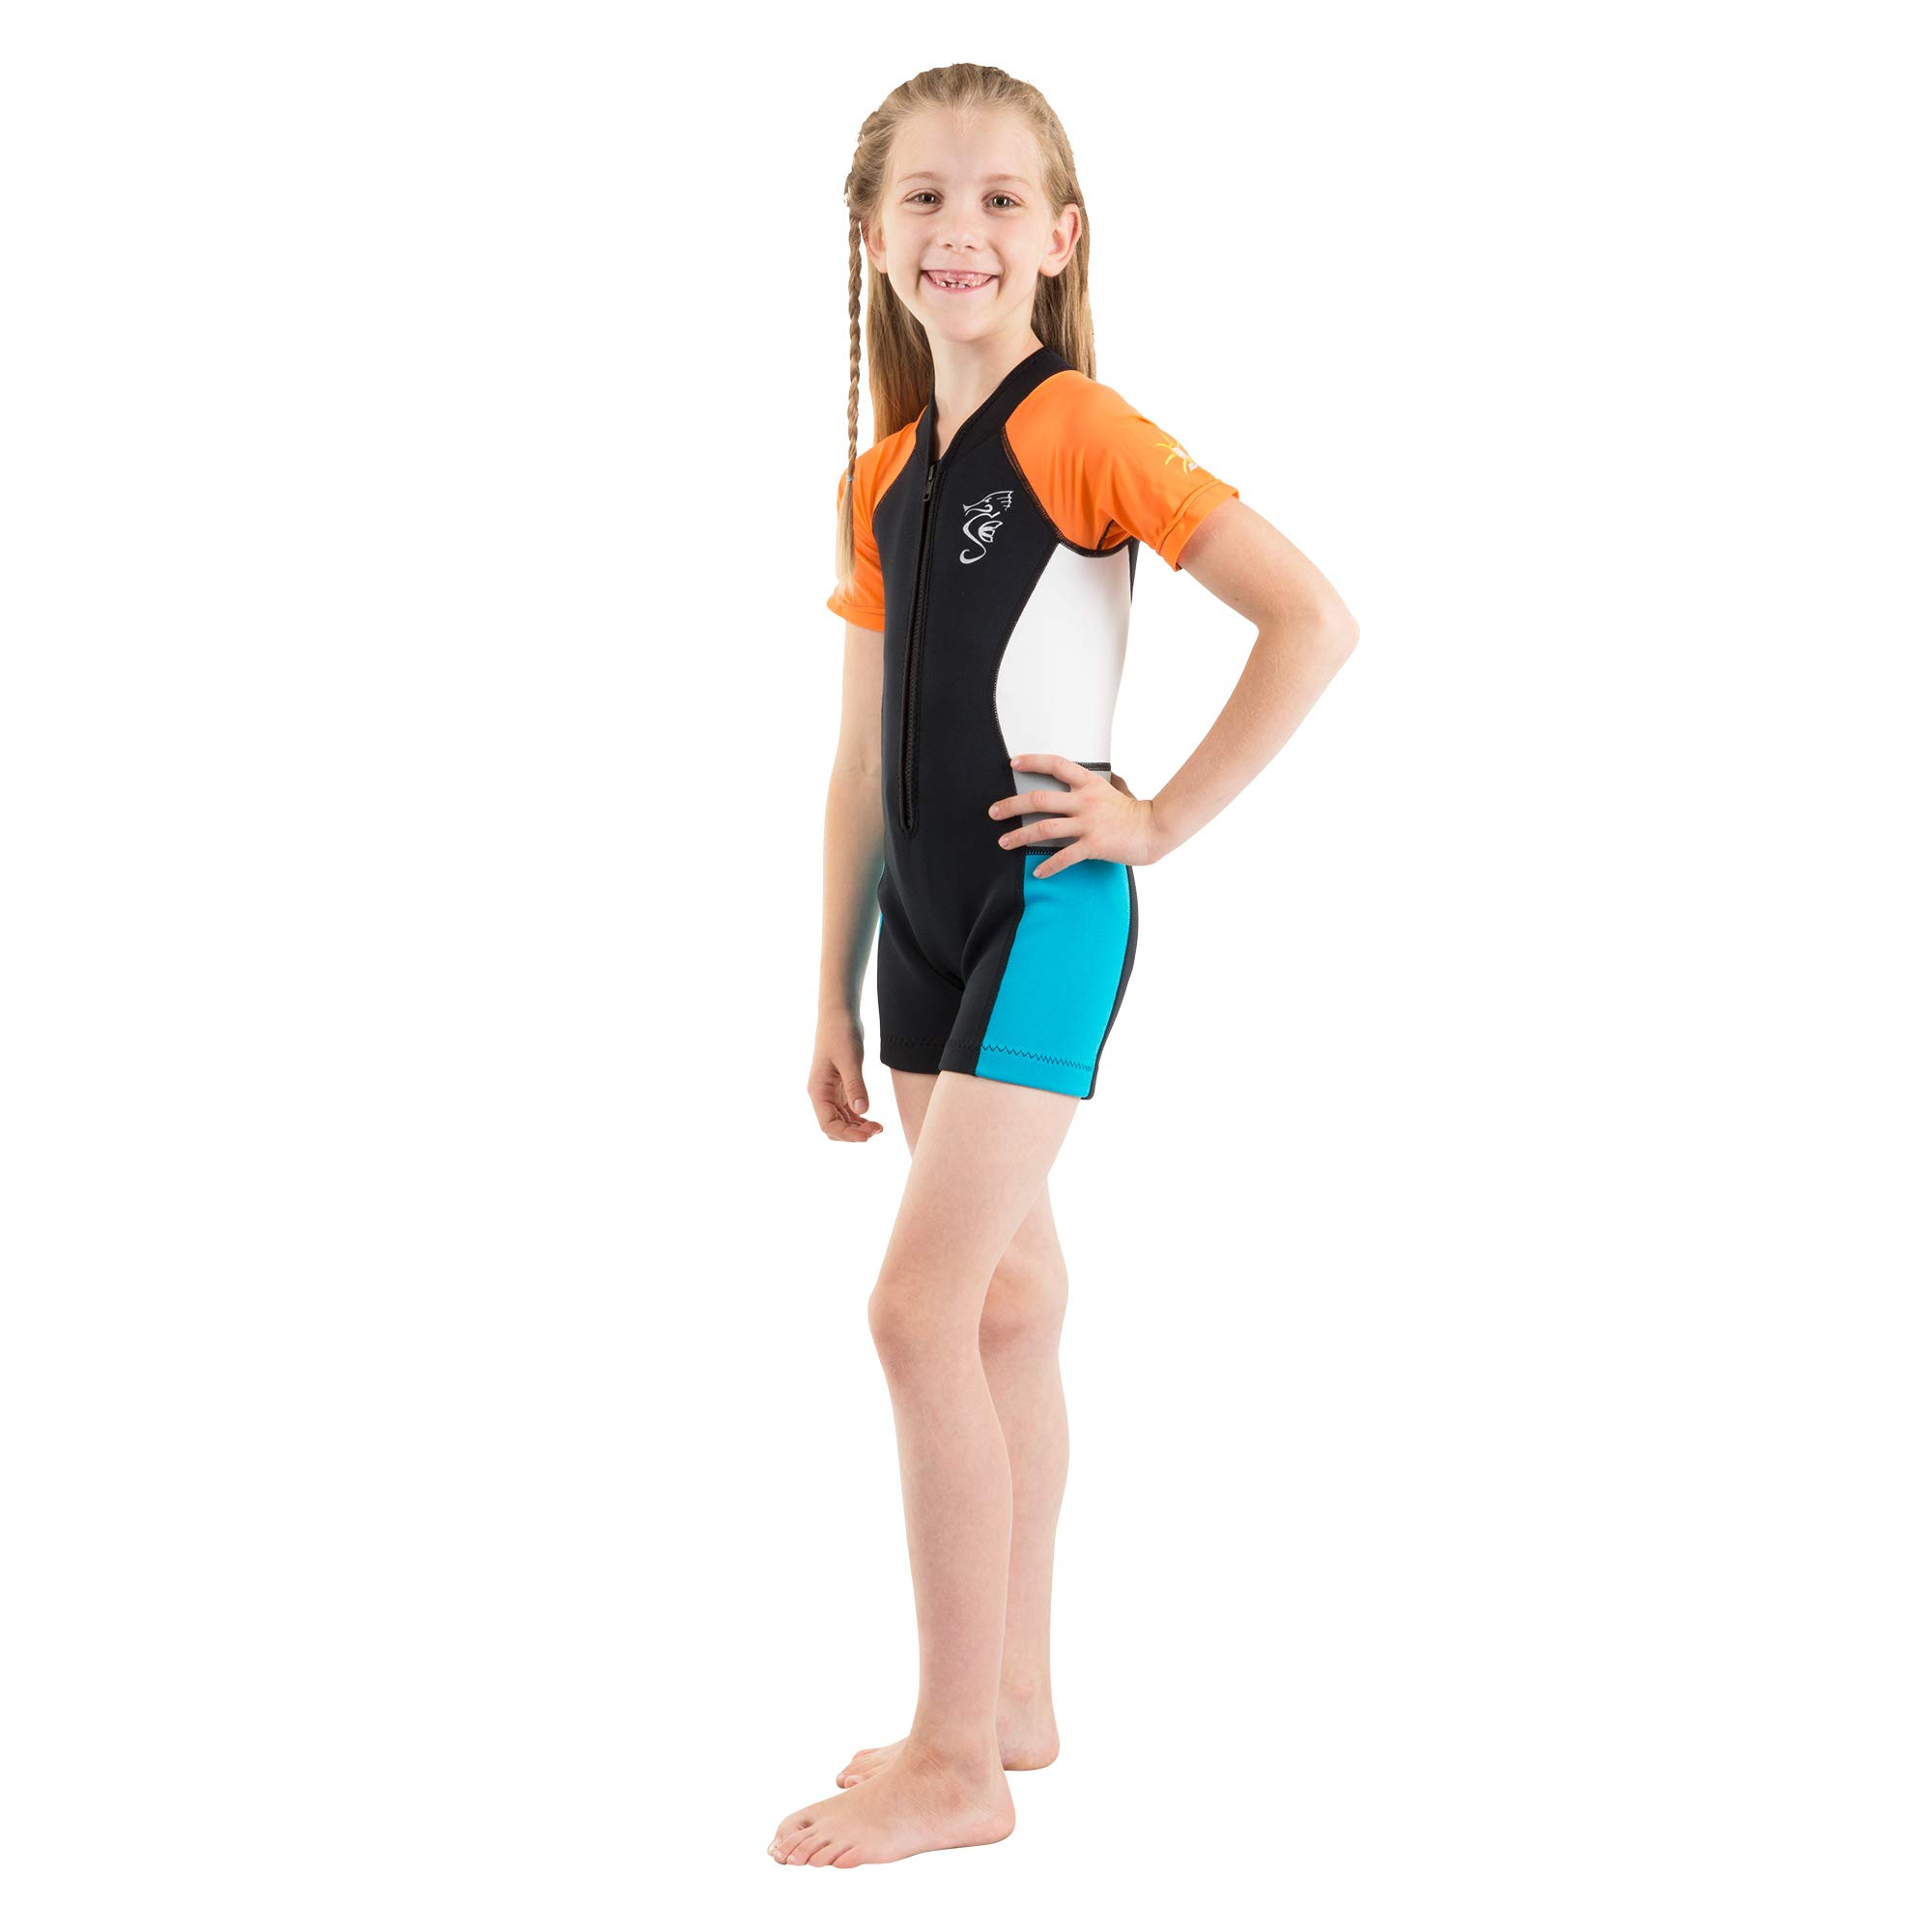 Seavenger Cadet 2mm Kids Shorty | Child Neoprene Wetsuit for Snorkeling, Surfing and Swimming (Orange, 4T) by Seavenger